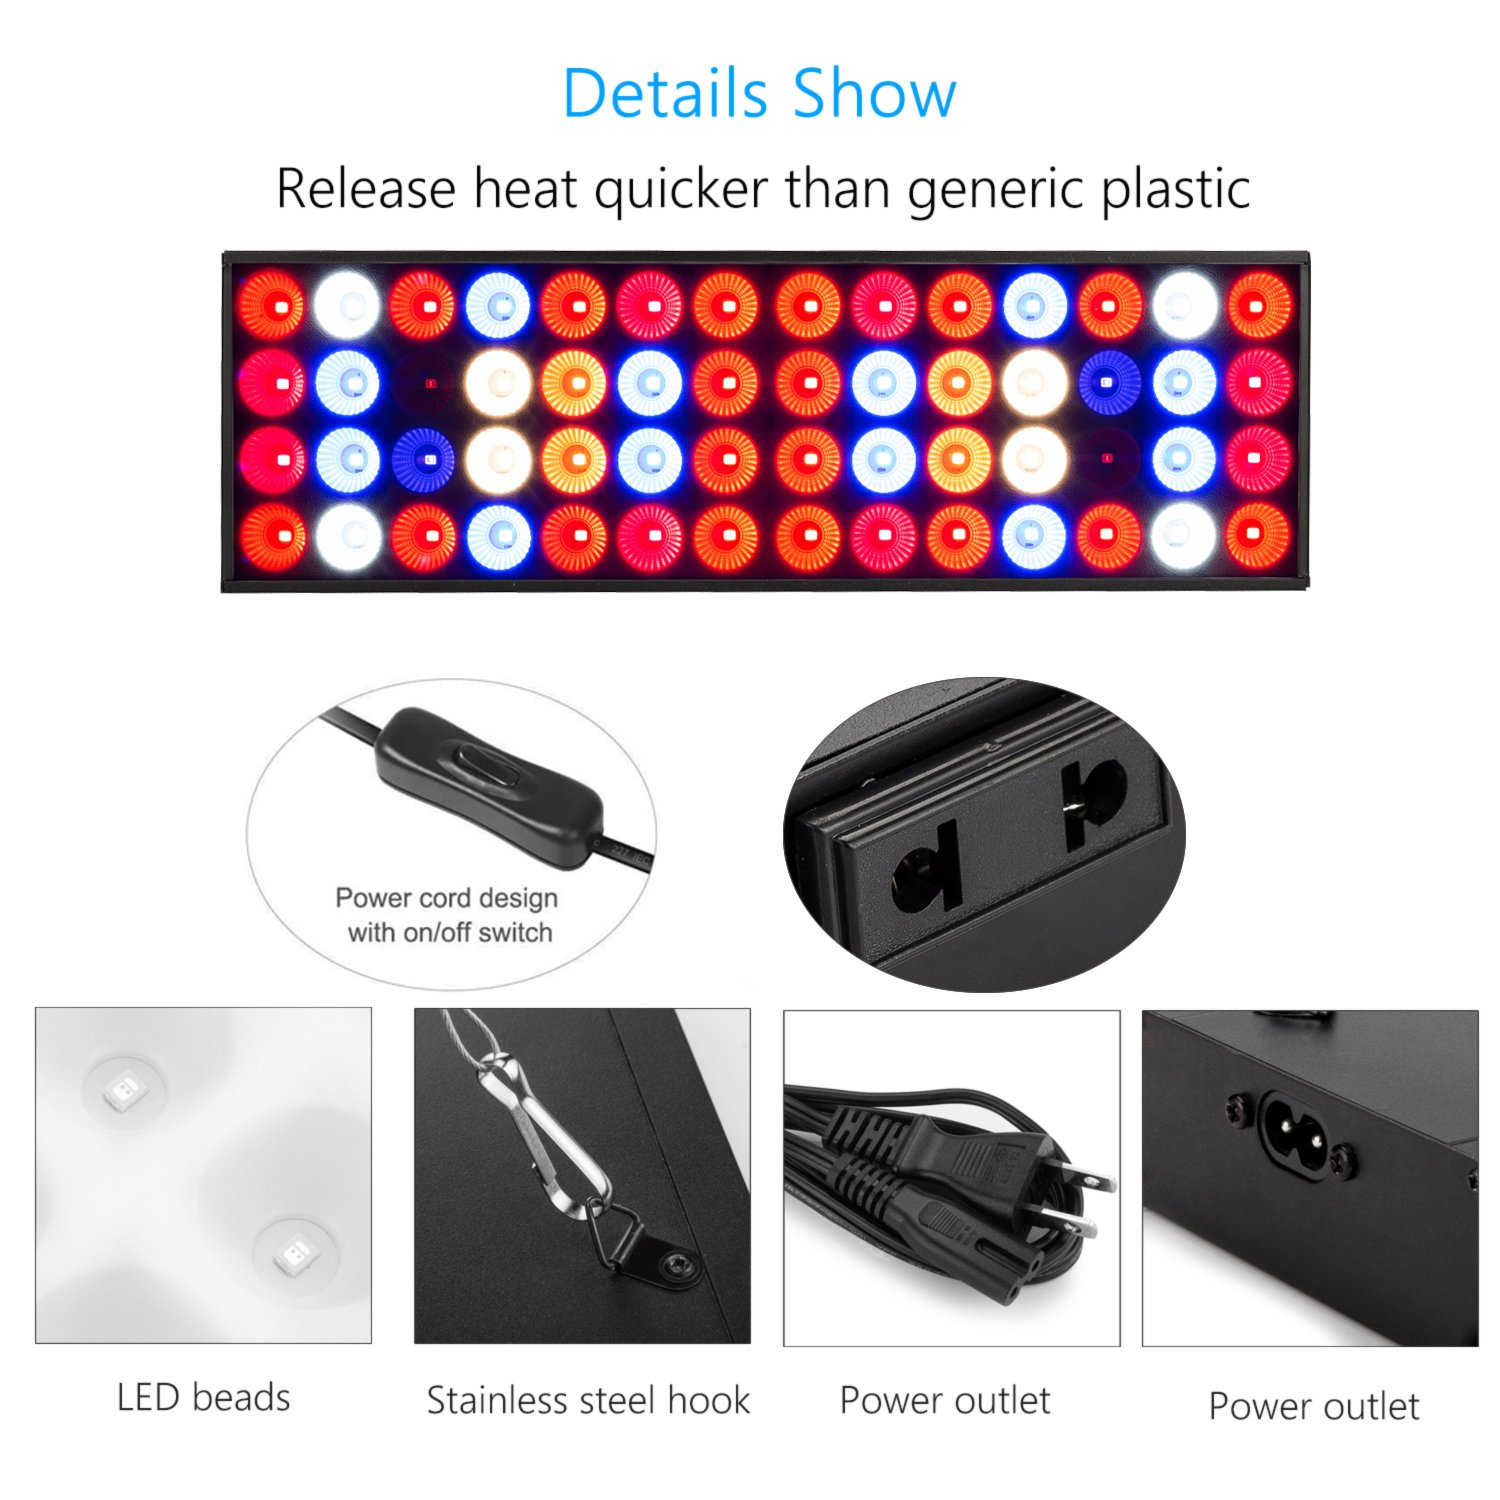 30W LED Grow Light,ZXMEAN Reflector-Series Growing Lamps with Daily Chain Hanging kits,Full Spectrum Plants Grow Lights for Indoor Plants,Hydroponic Greenhouse Seedling Vegetative and Flowering